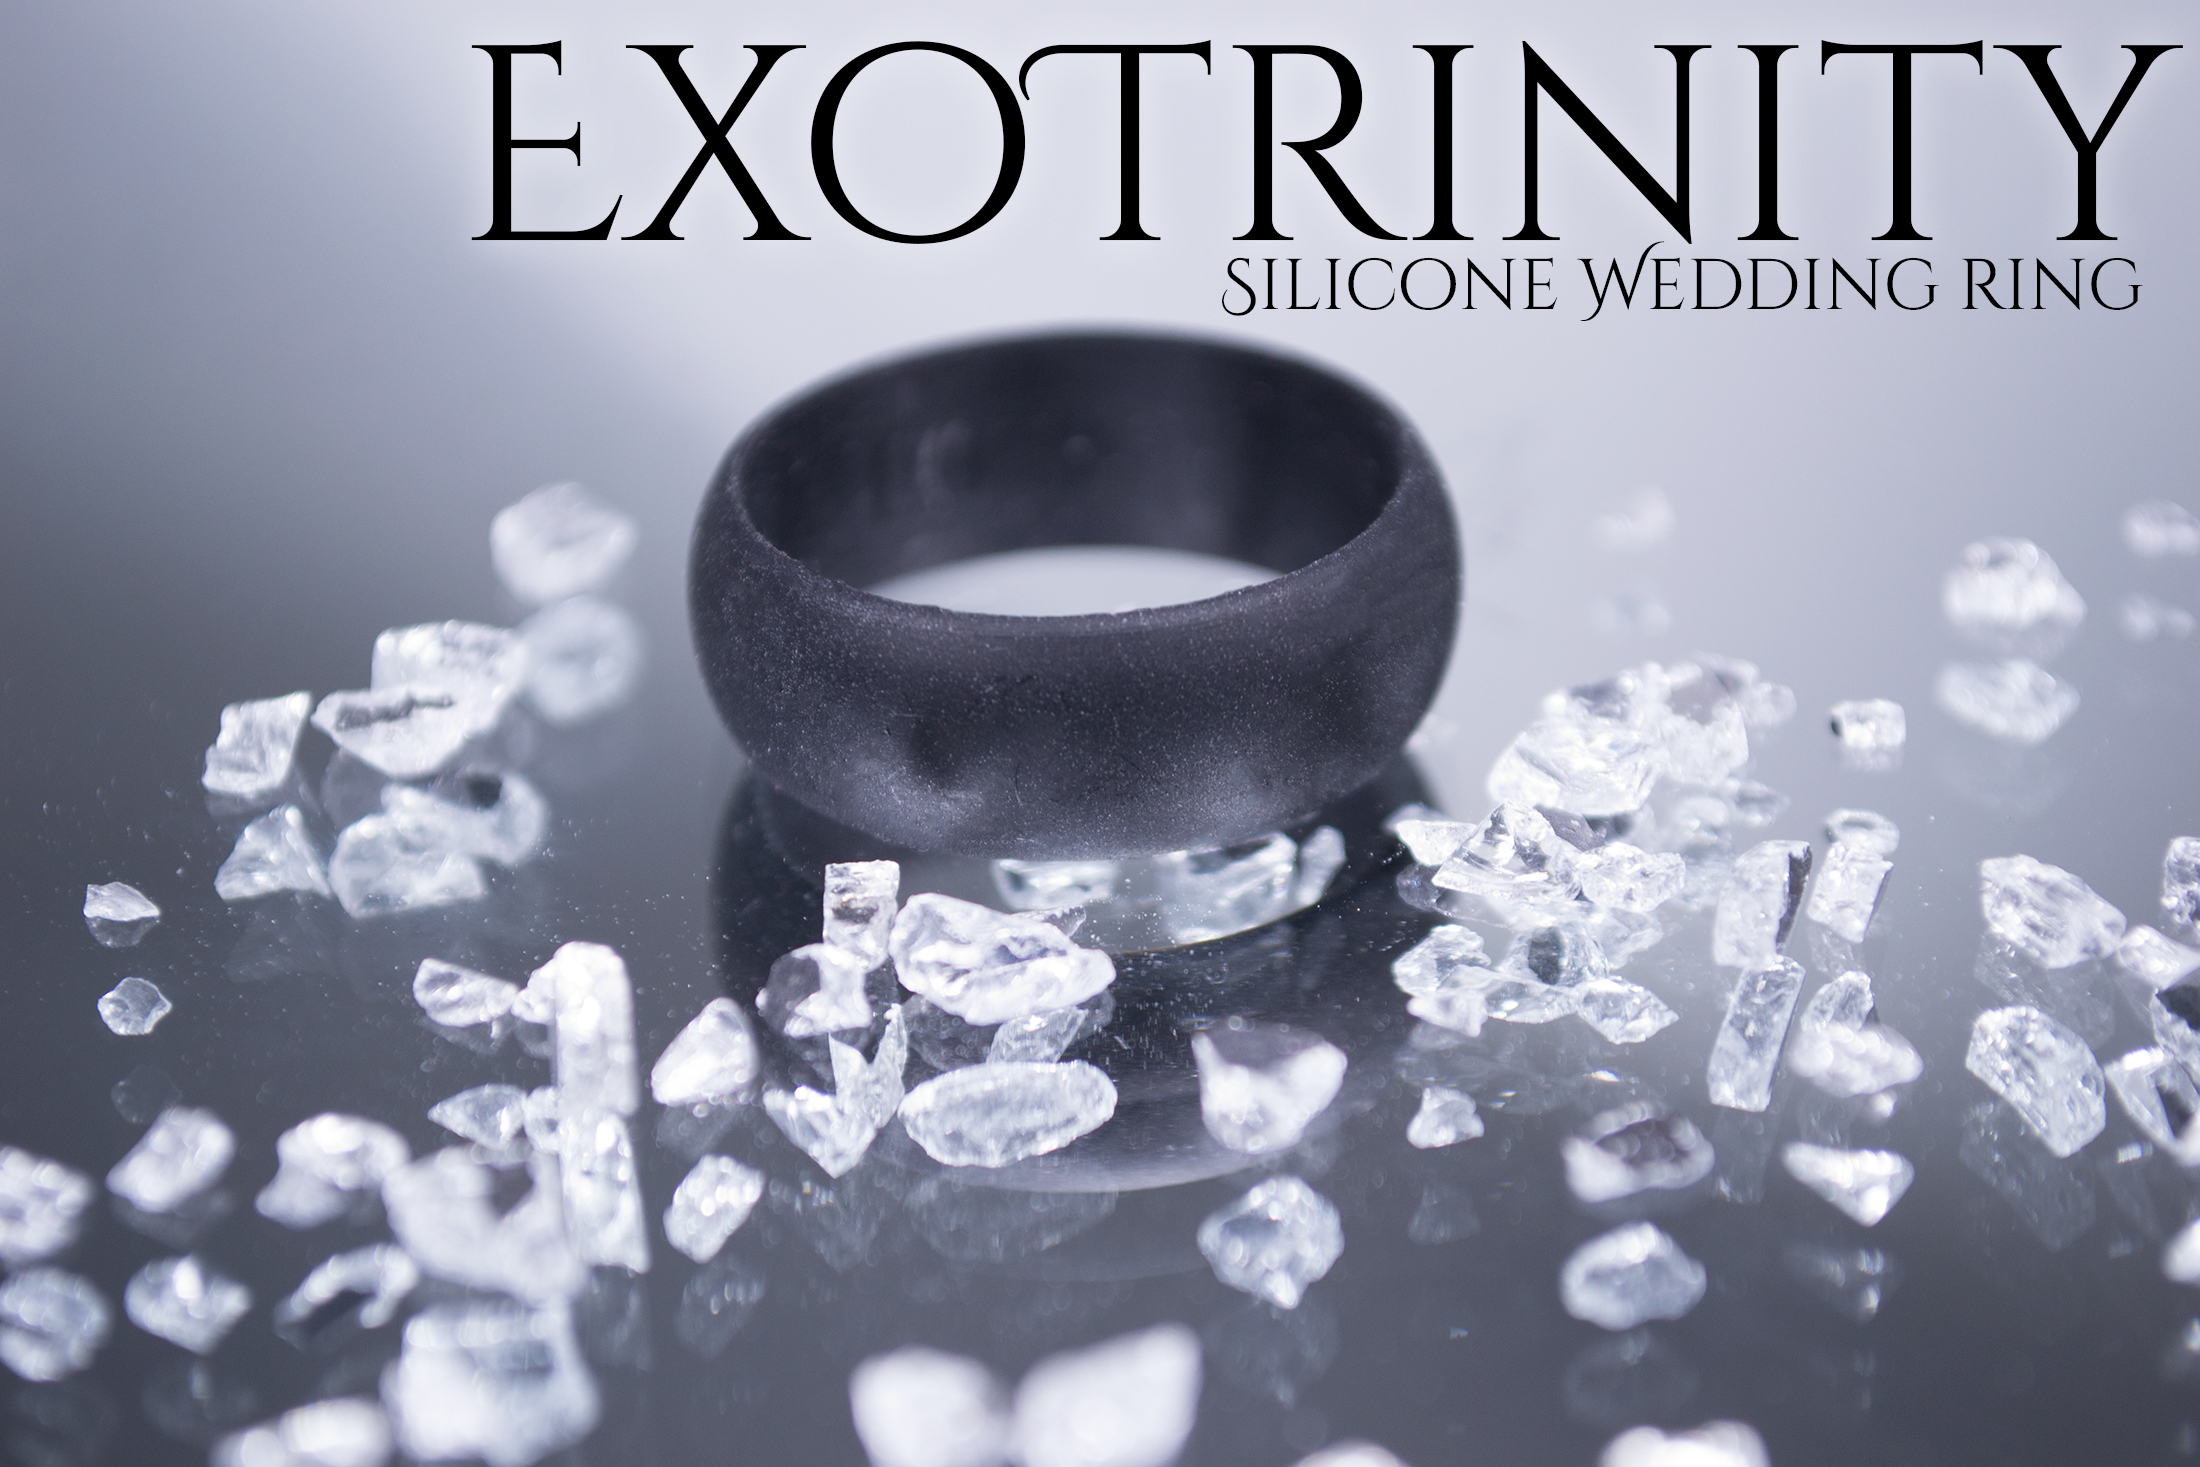 A Silicone Wedding Ring from ExoTrinity #siliconeweddingring